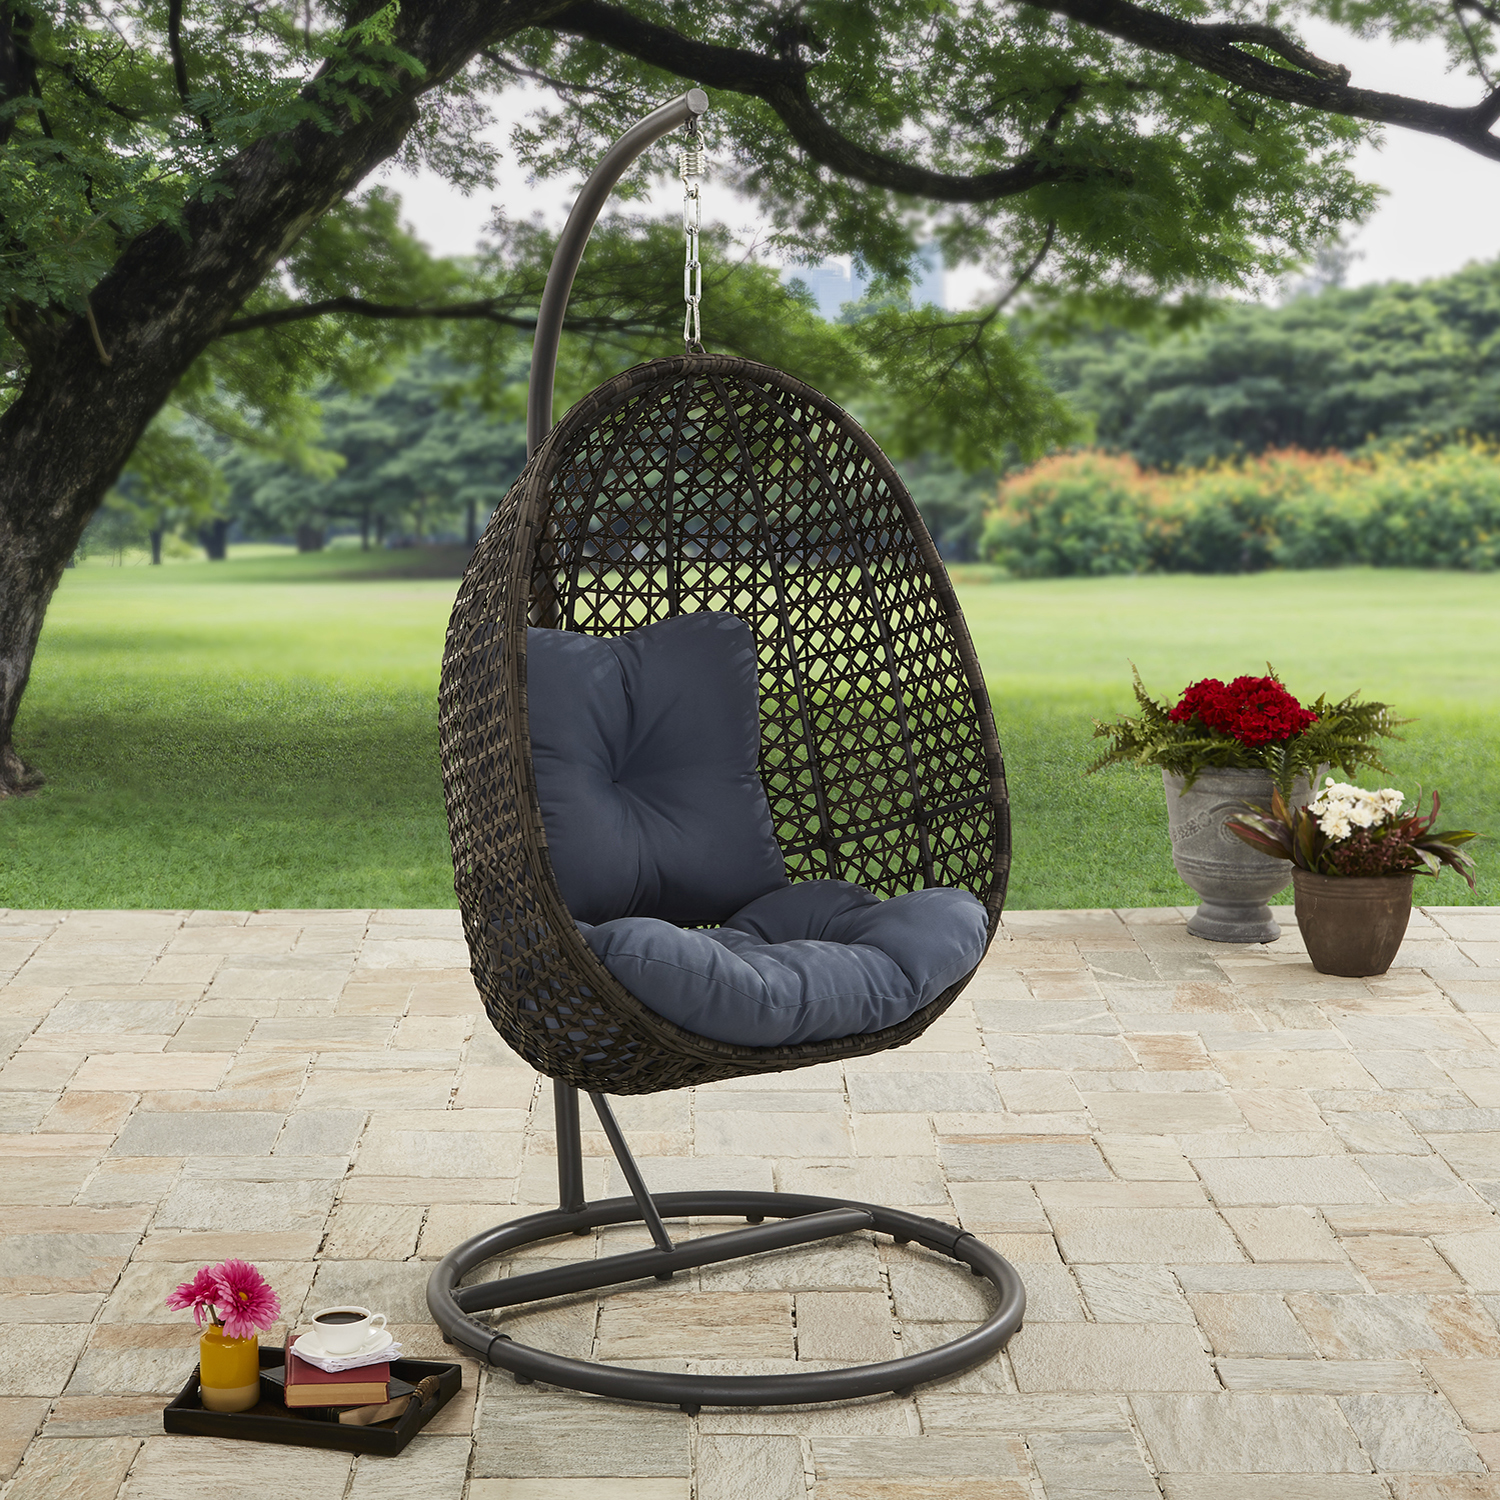 Better Homes and Gardens Lantis Wicker Hanging Chair with Stand